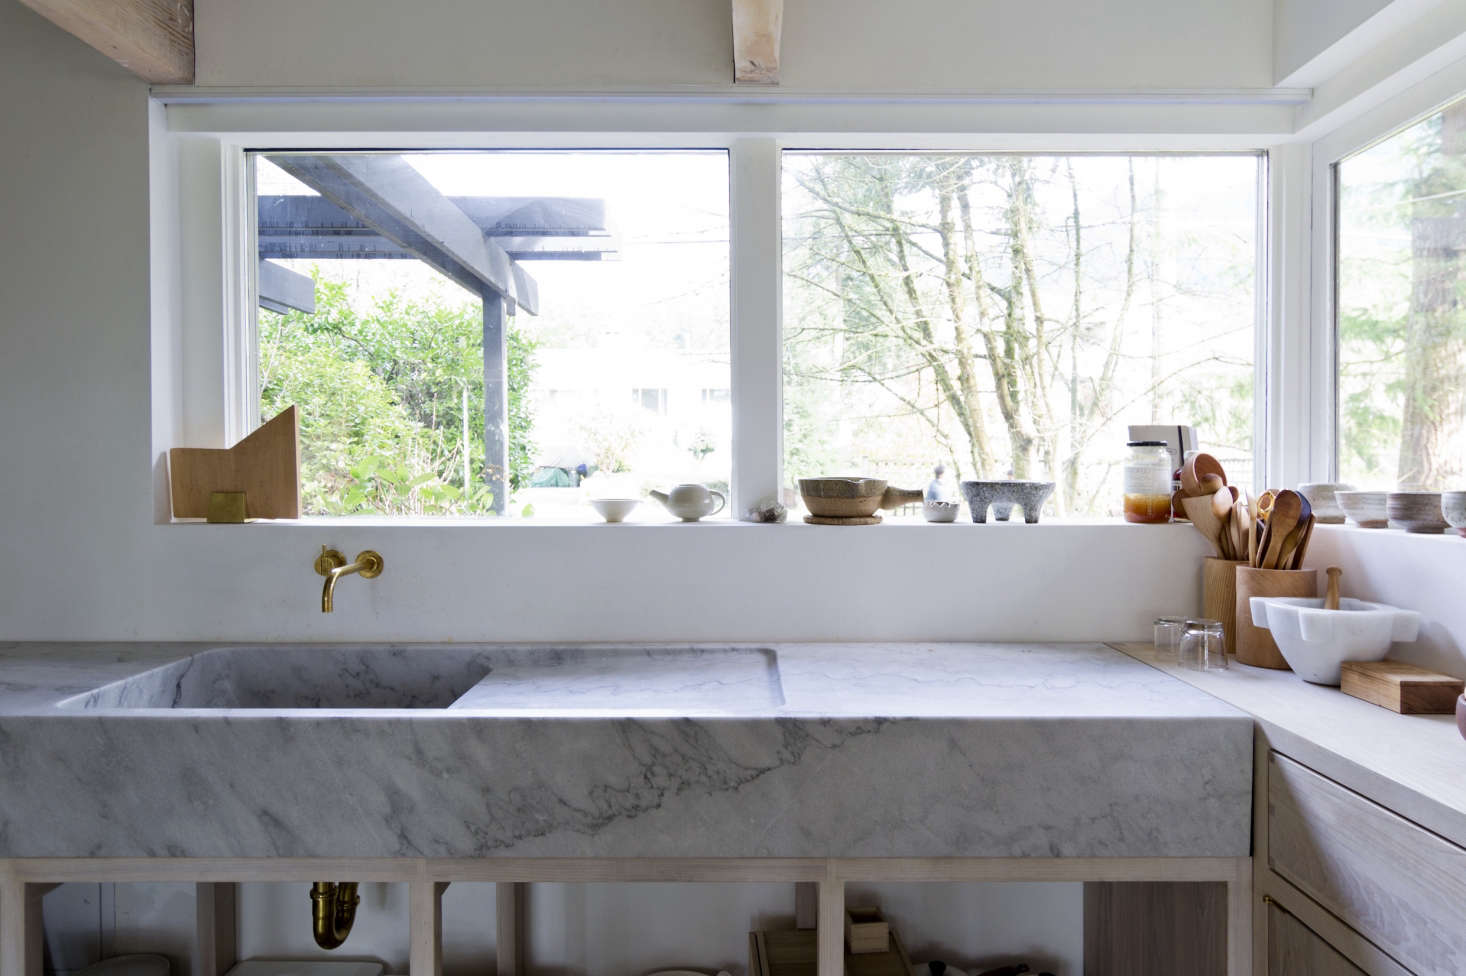 An integrated marble sink (with drain board) carved from a huge slab of marble from the Hisnet Inlet quarry on Vancouver Island, as seen in one of our favorite kitchens of all time: Kitchen of the Week: A Monumental Marble Countertop. Photograph courtesy of Scott & Scott Architects.